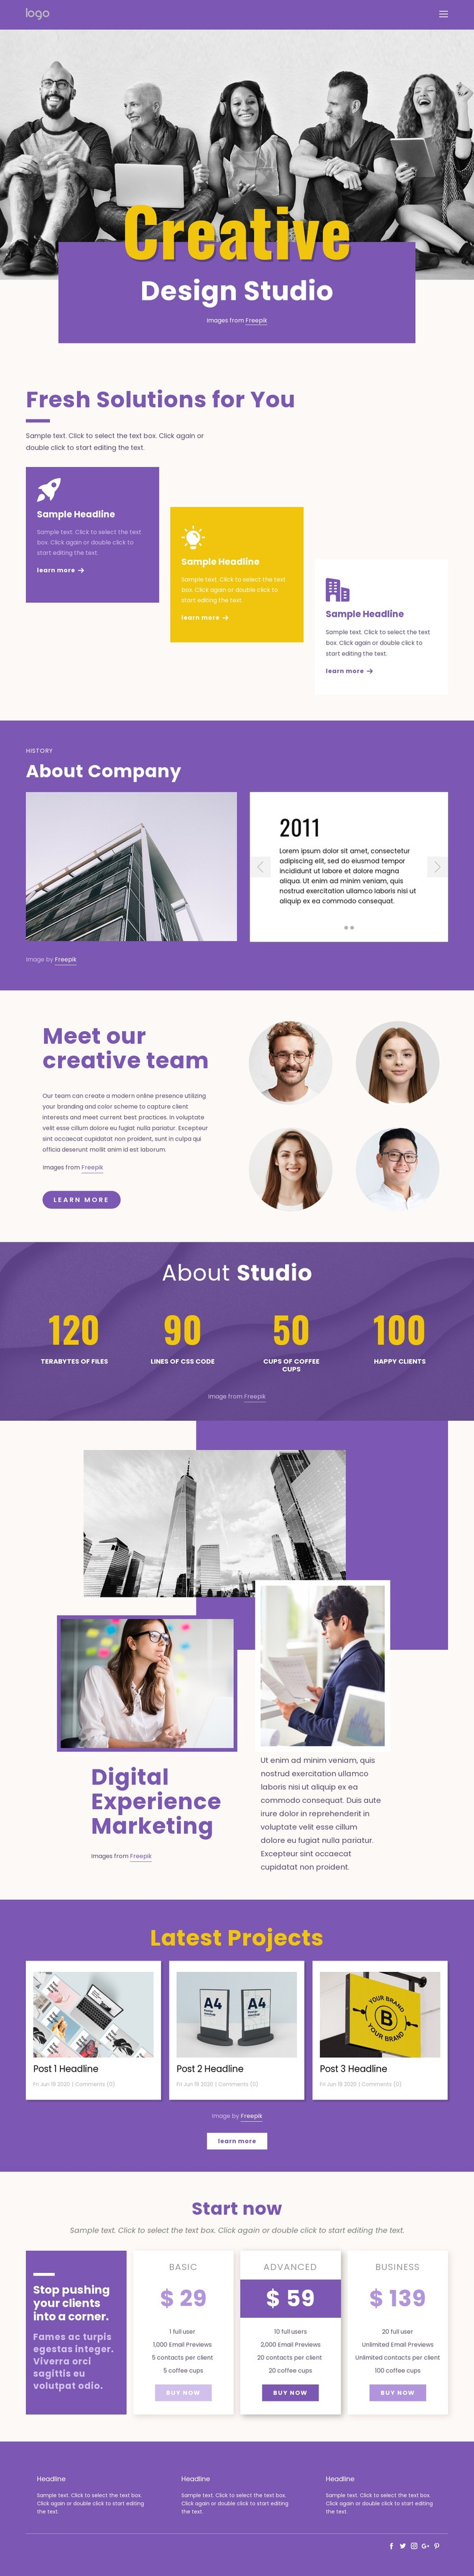 We are creative branding professionals Html Code Example